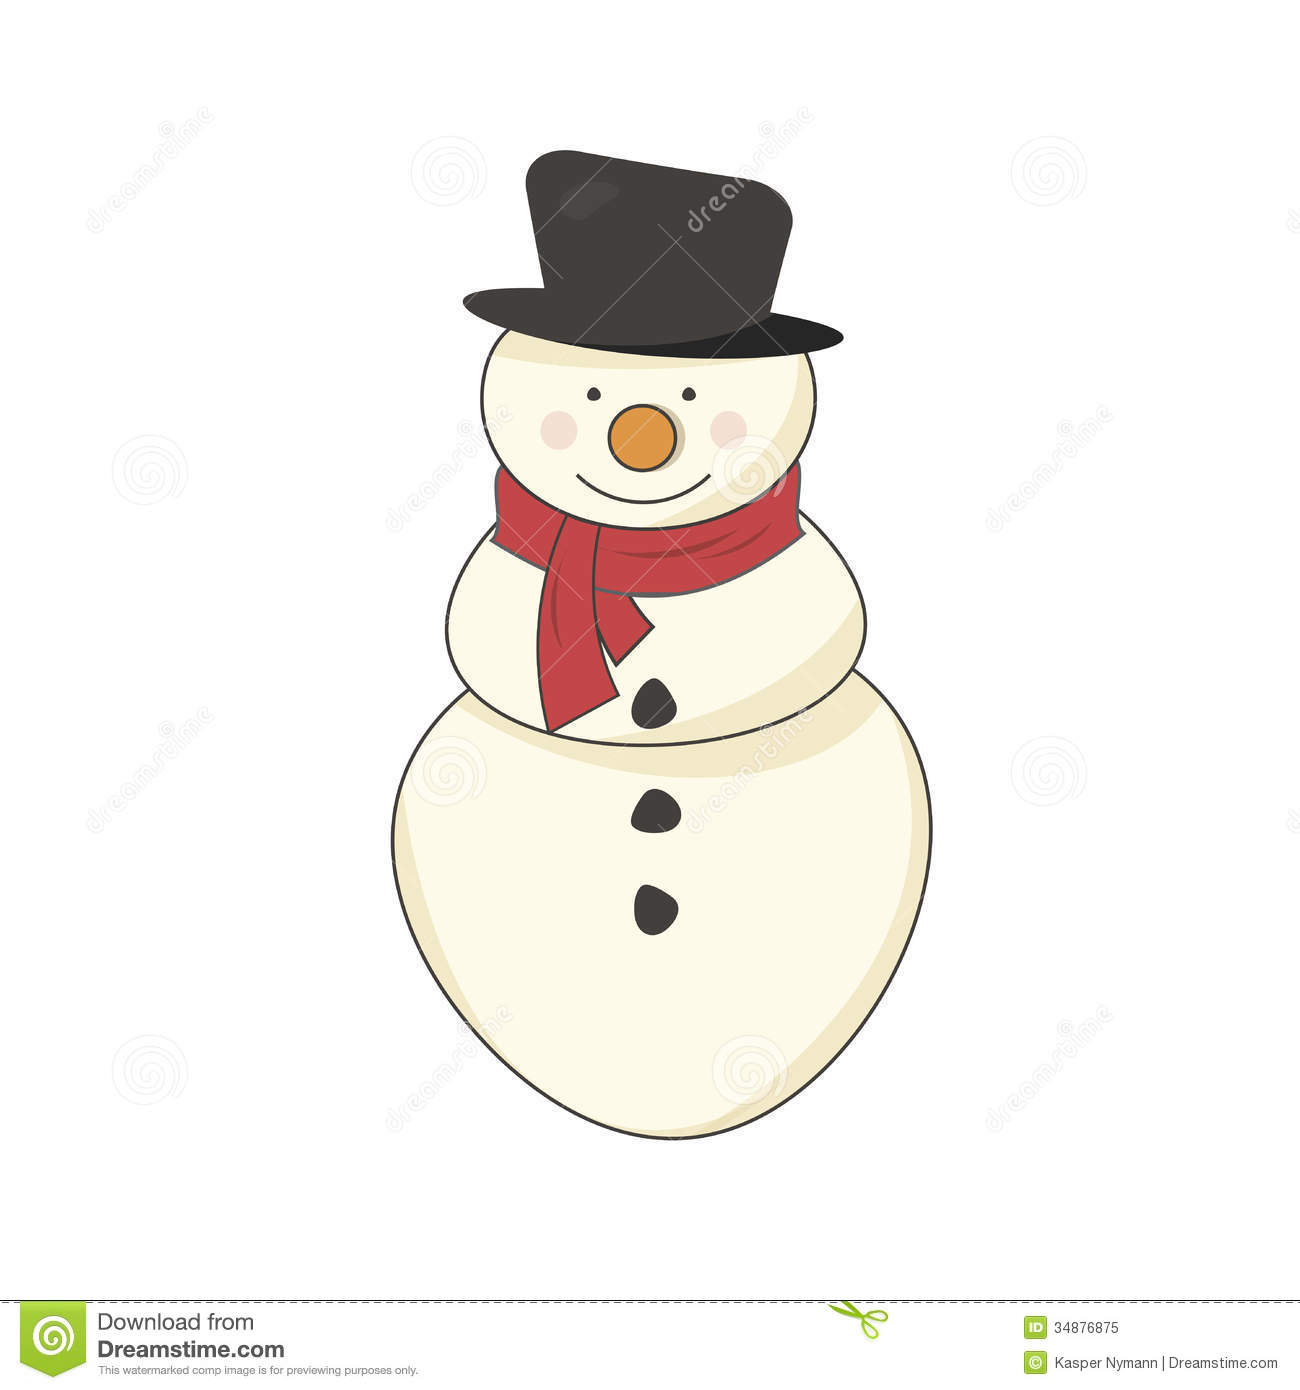 snowman with a scarf royalty free stock photo